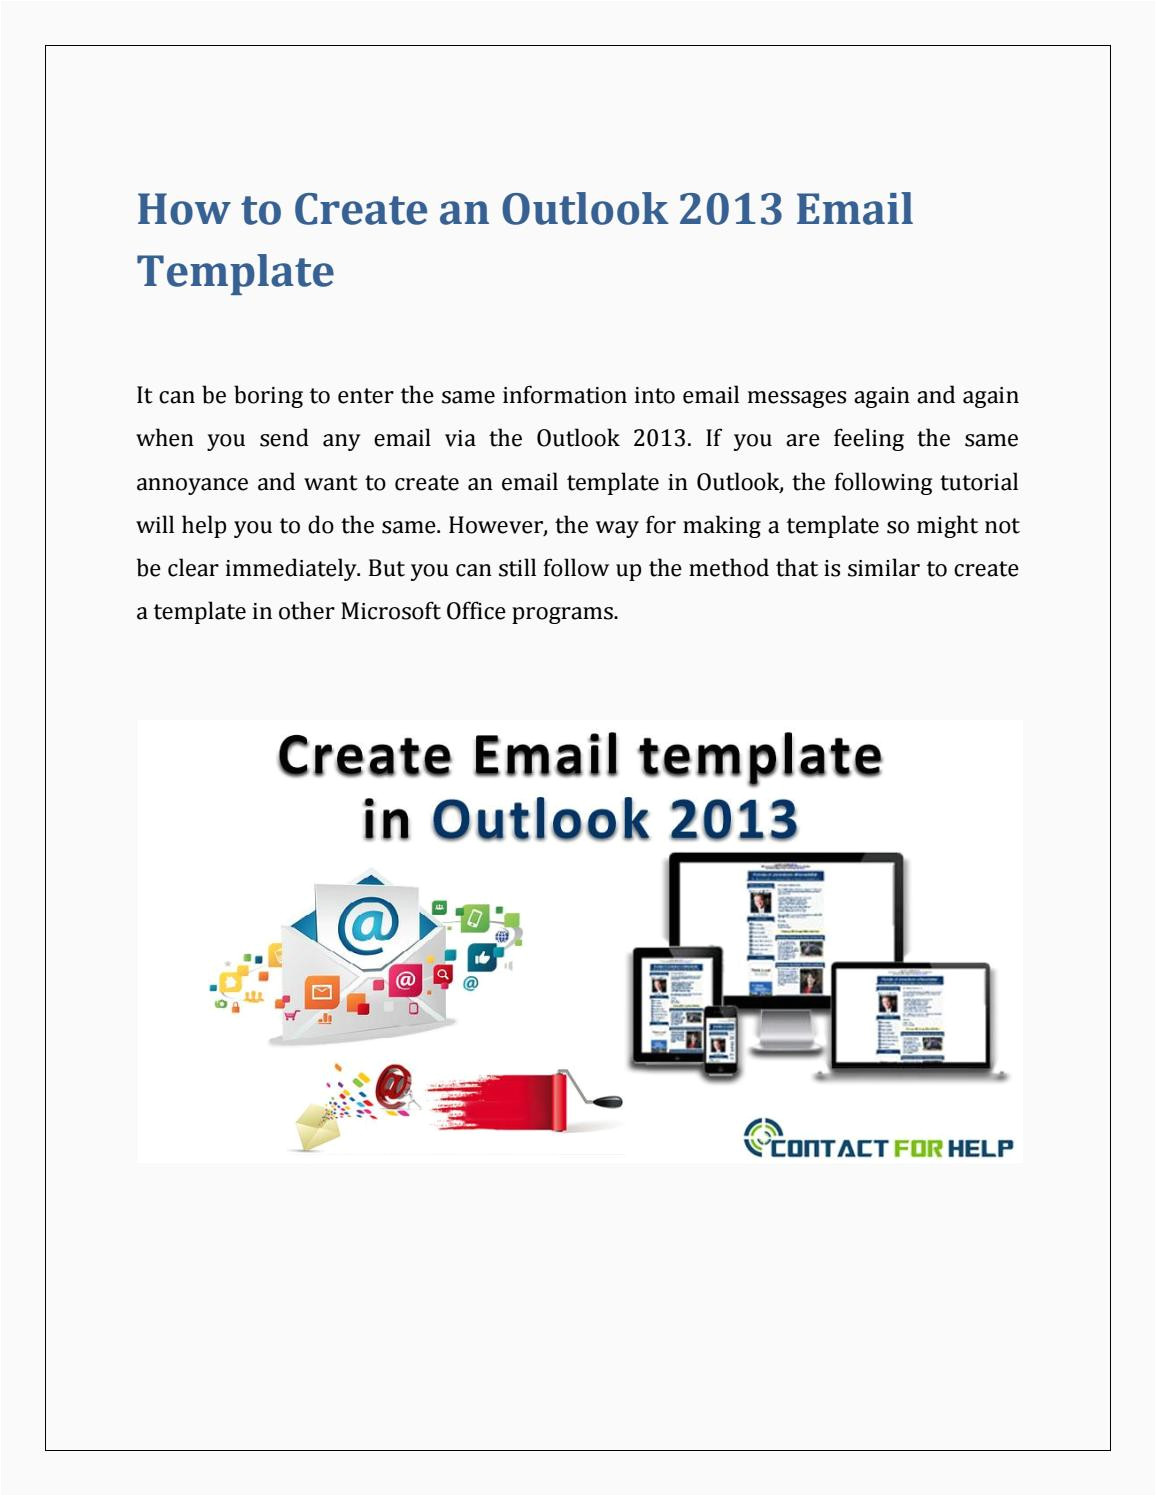 How to Make An Email Template In Outlook 2013 Create An Email Template In Outlook 2013 by Lisa Heydon